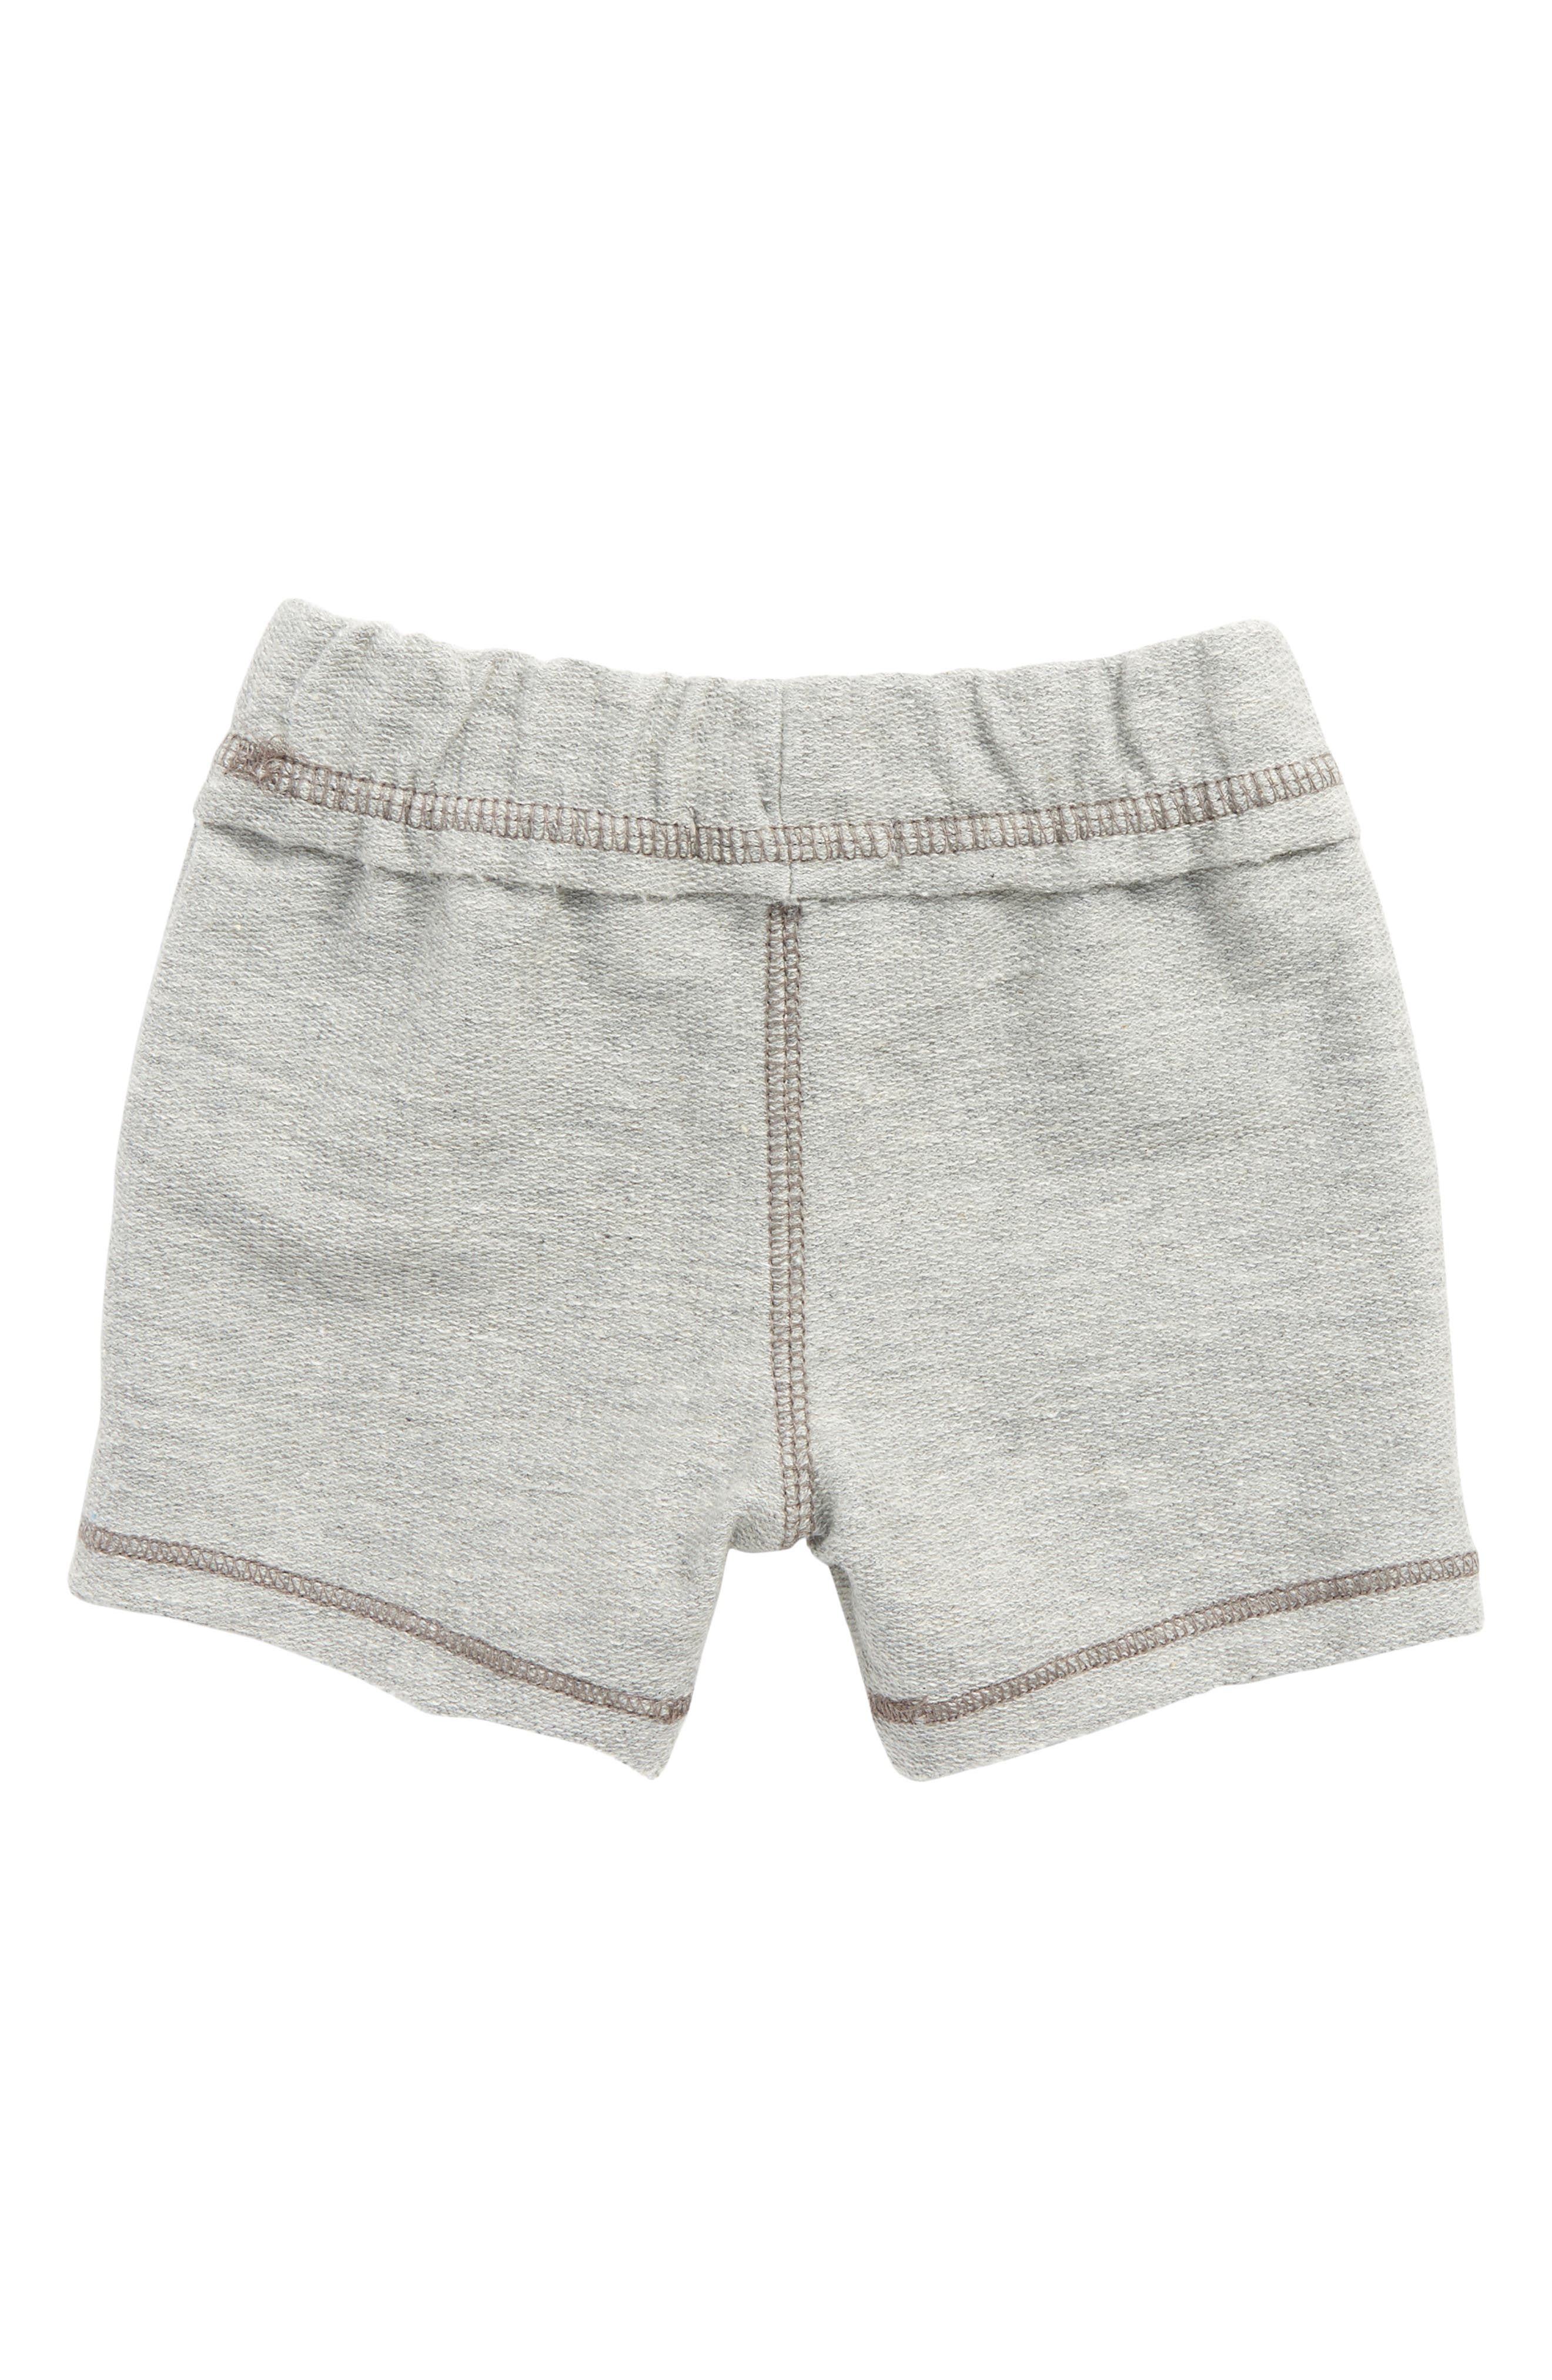 Organic Cotton French Terry Shorts,                             Alternate thumbnail 2, color,                             050